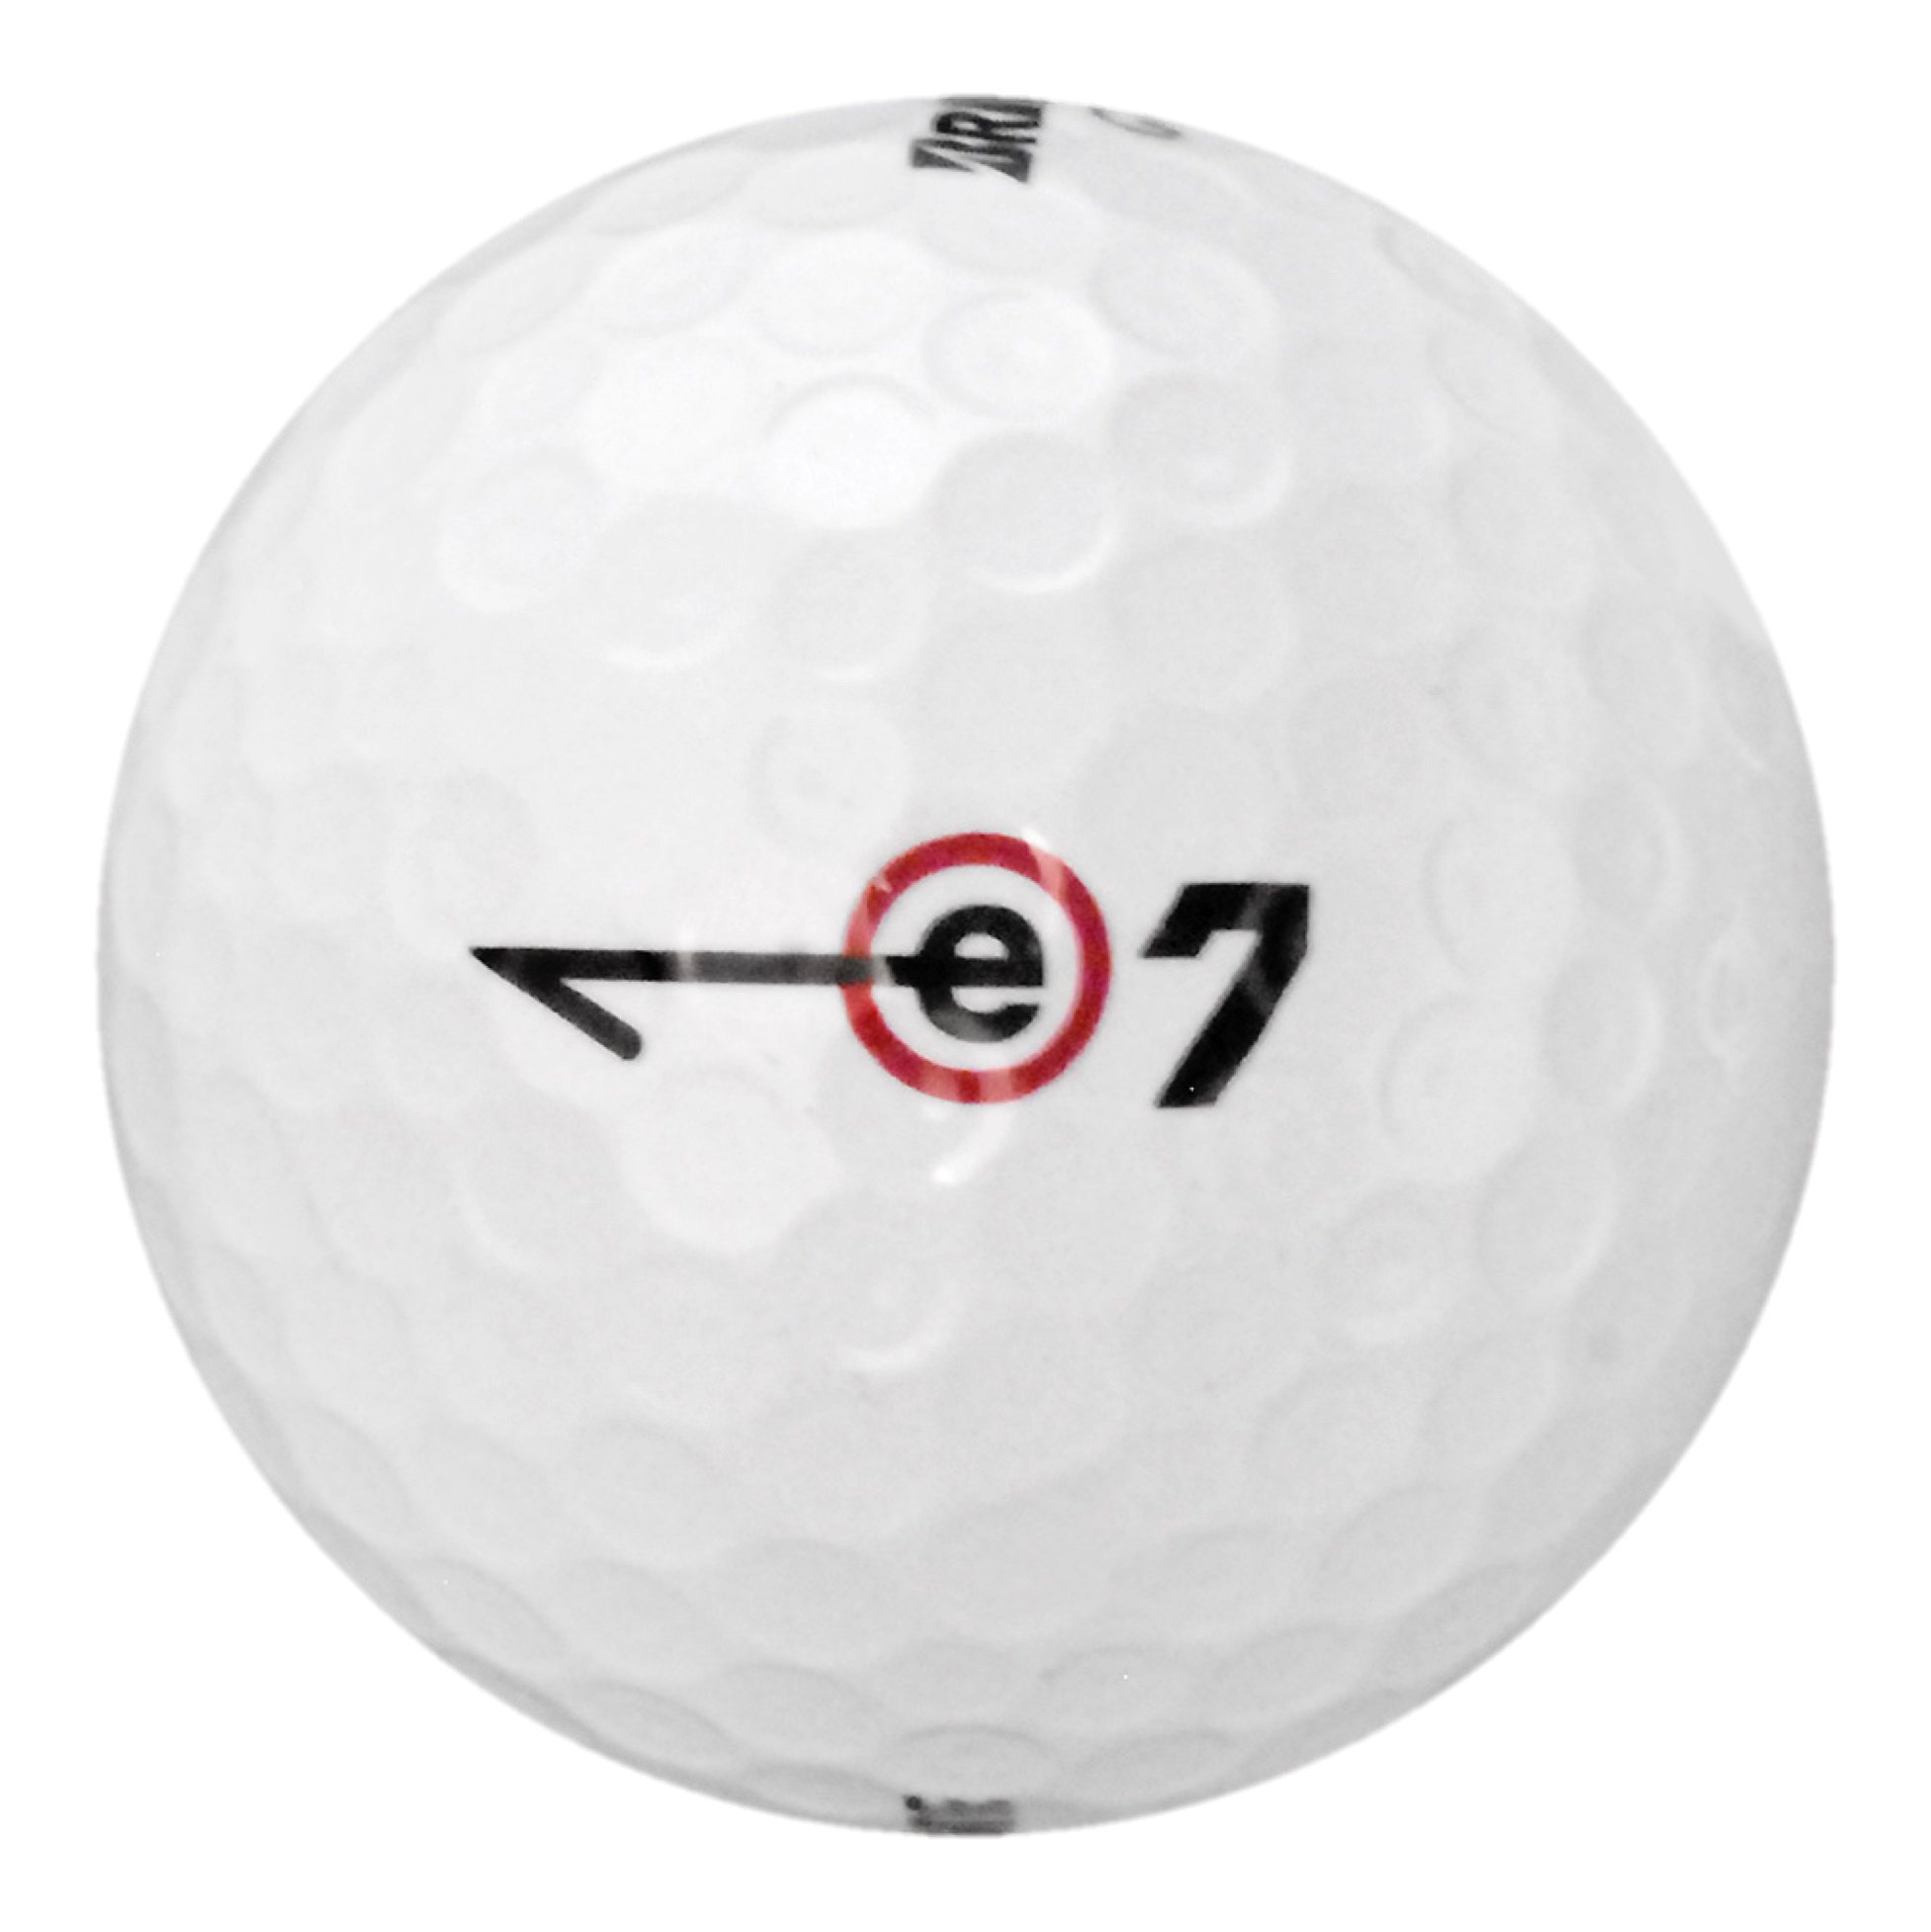 84 Bridgestone e7 - Mint (AAAAA) Grade - Recycled (Used) Golf Balls